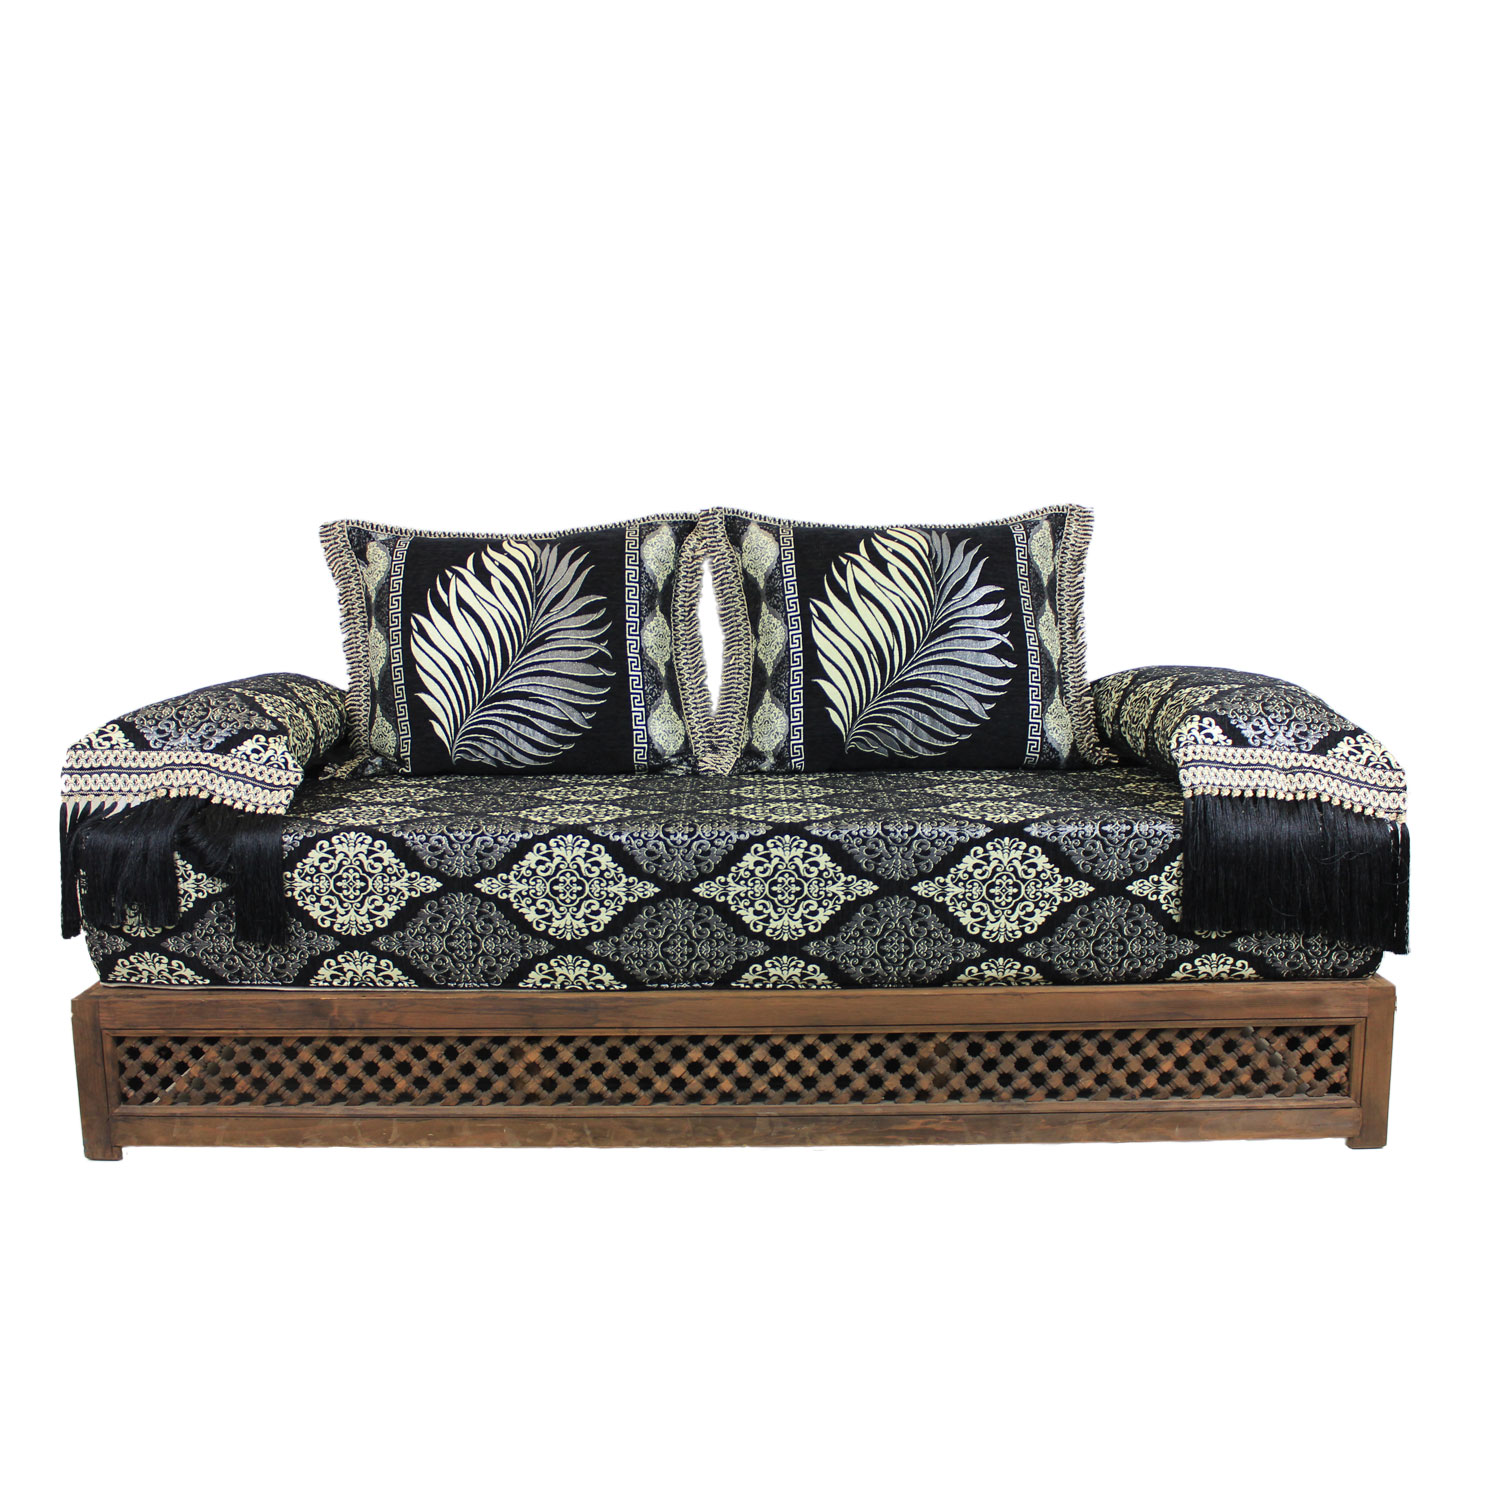 Awesome sofa style marocain gallery amazing house design for Sofa orientalisch